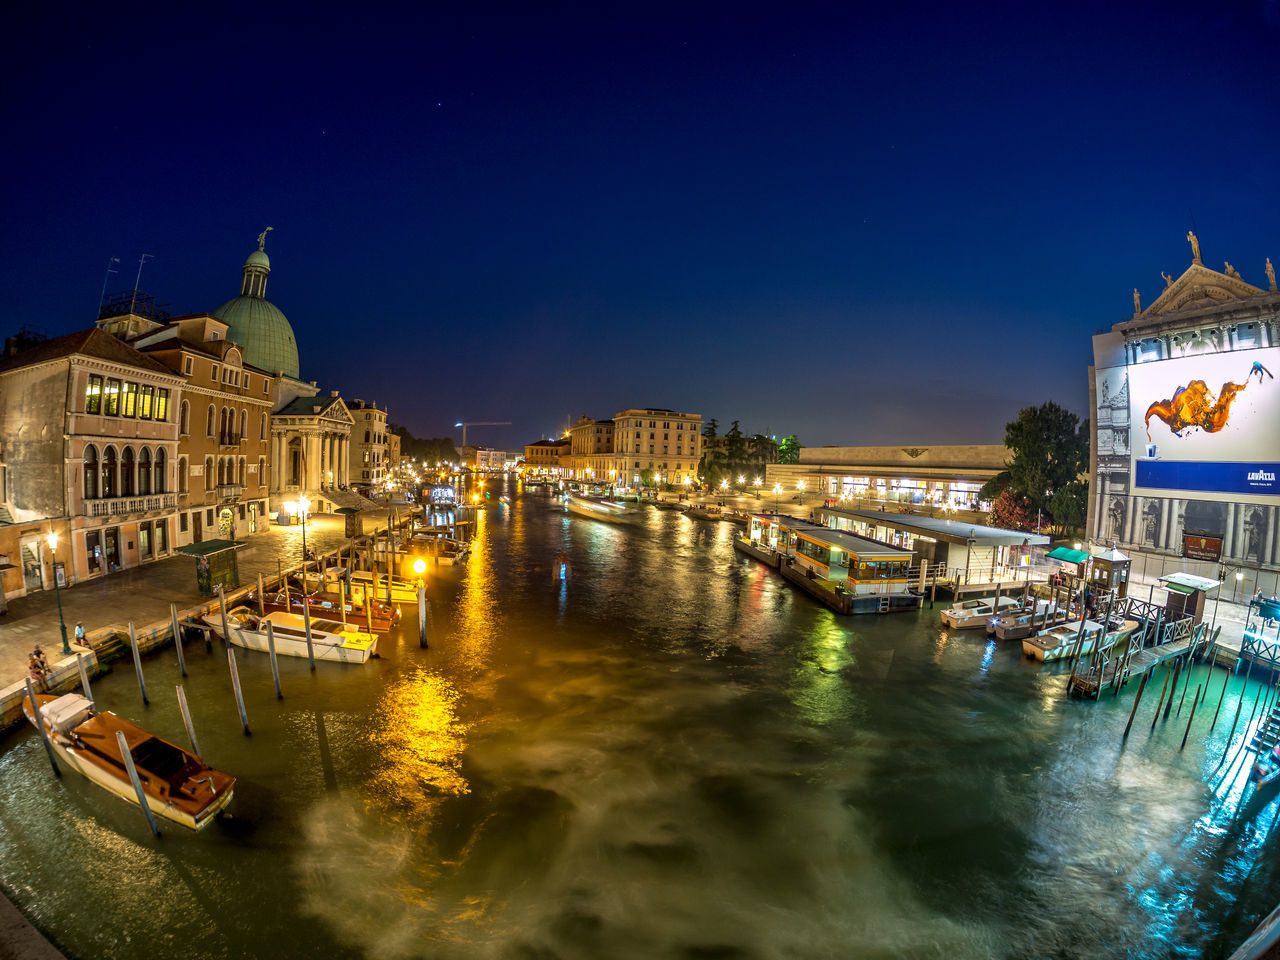 architecture, building exterior, night, built structure, water, illuminated, nautical vessel, high angle view, transportation, mode of transport, outdoors, city, waterfront, no people, travel destinations, moored, cityscape, clear sky, sky